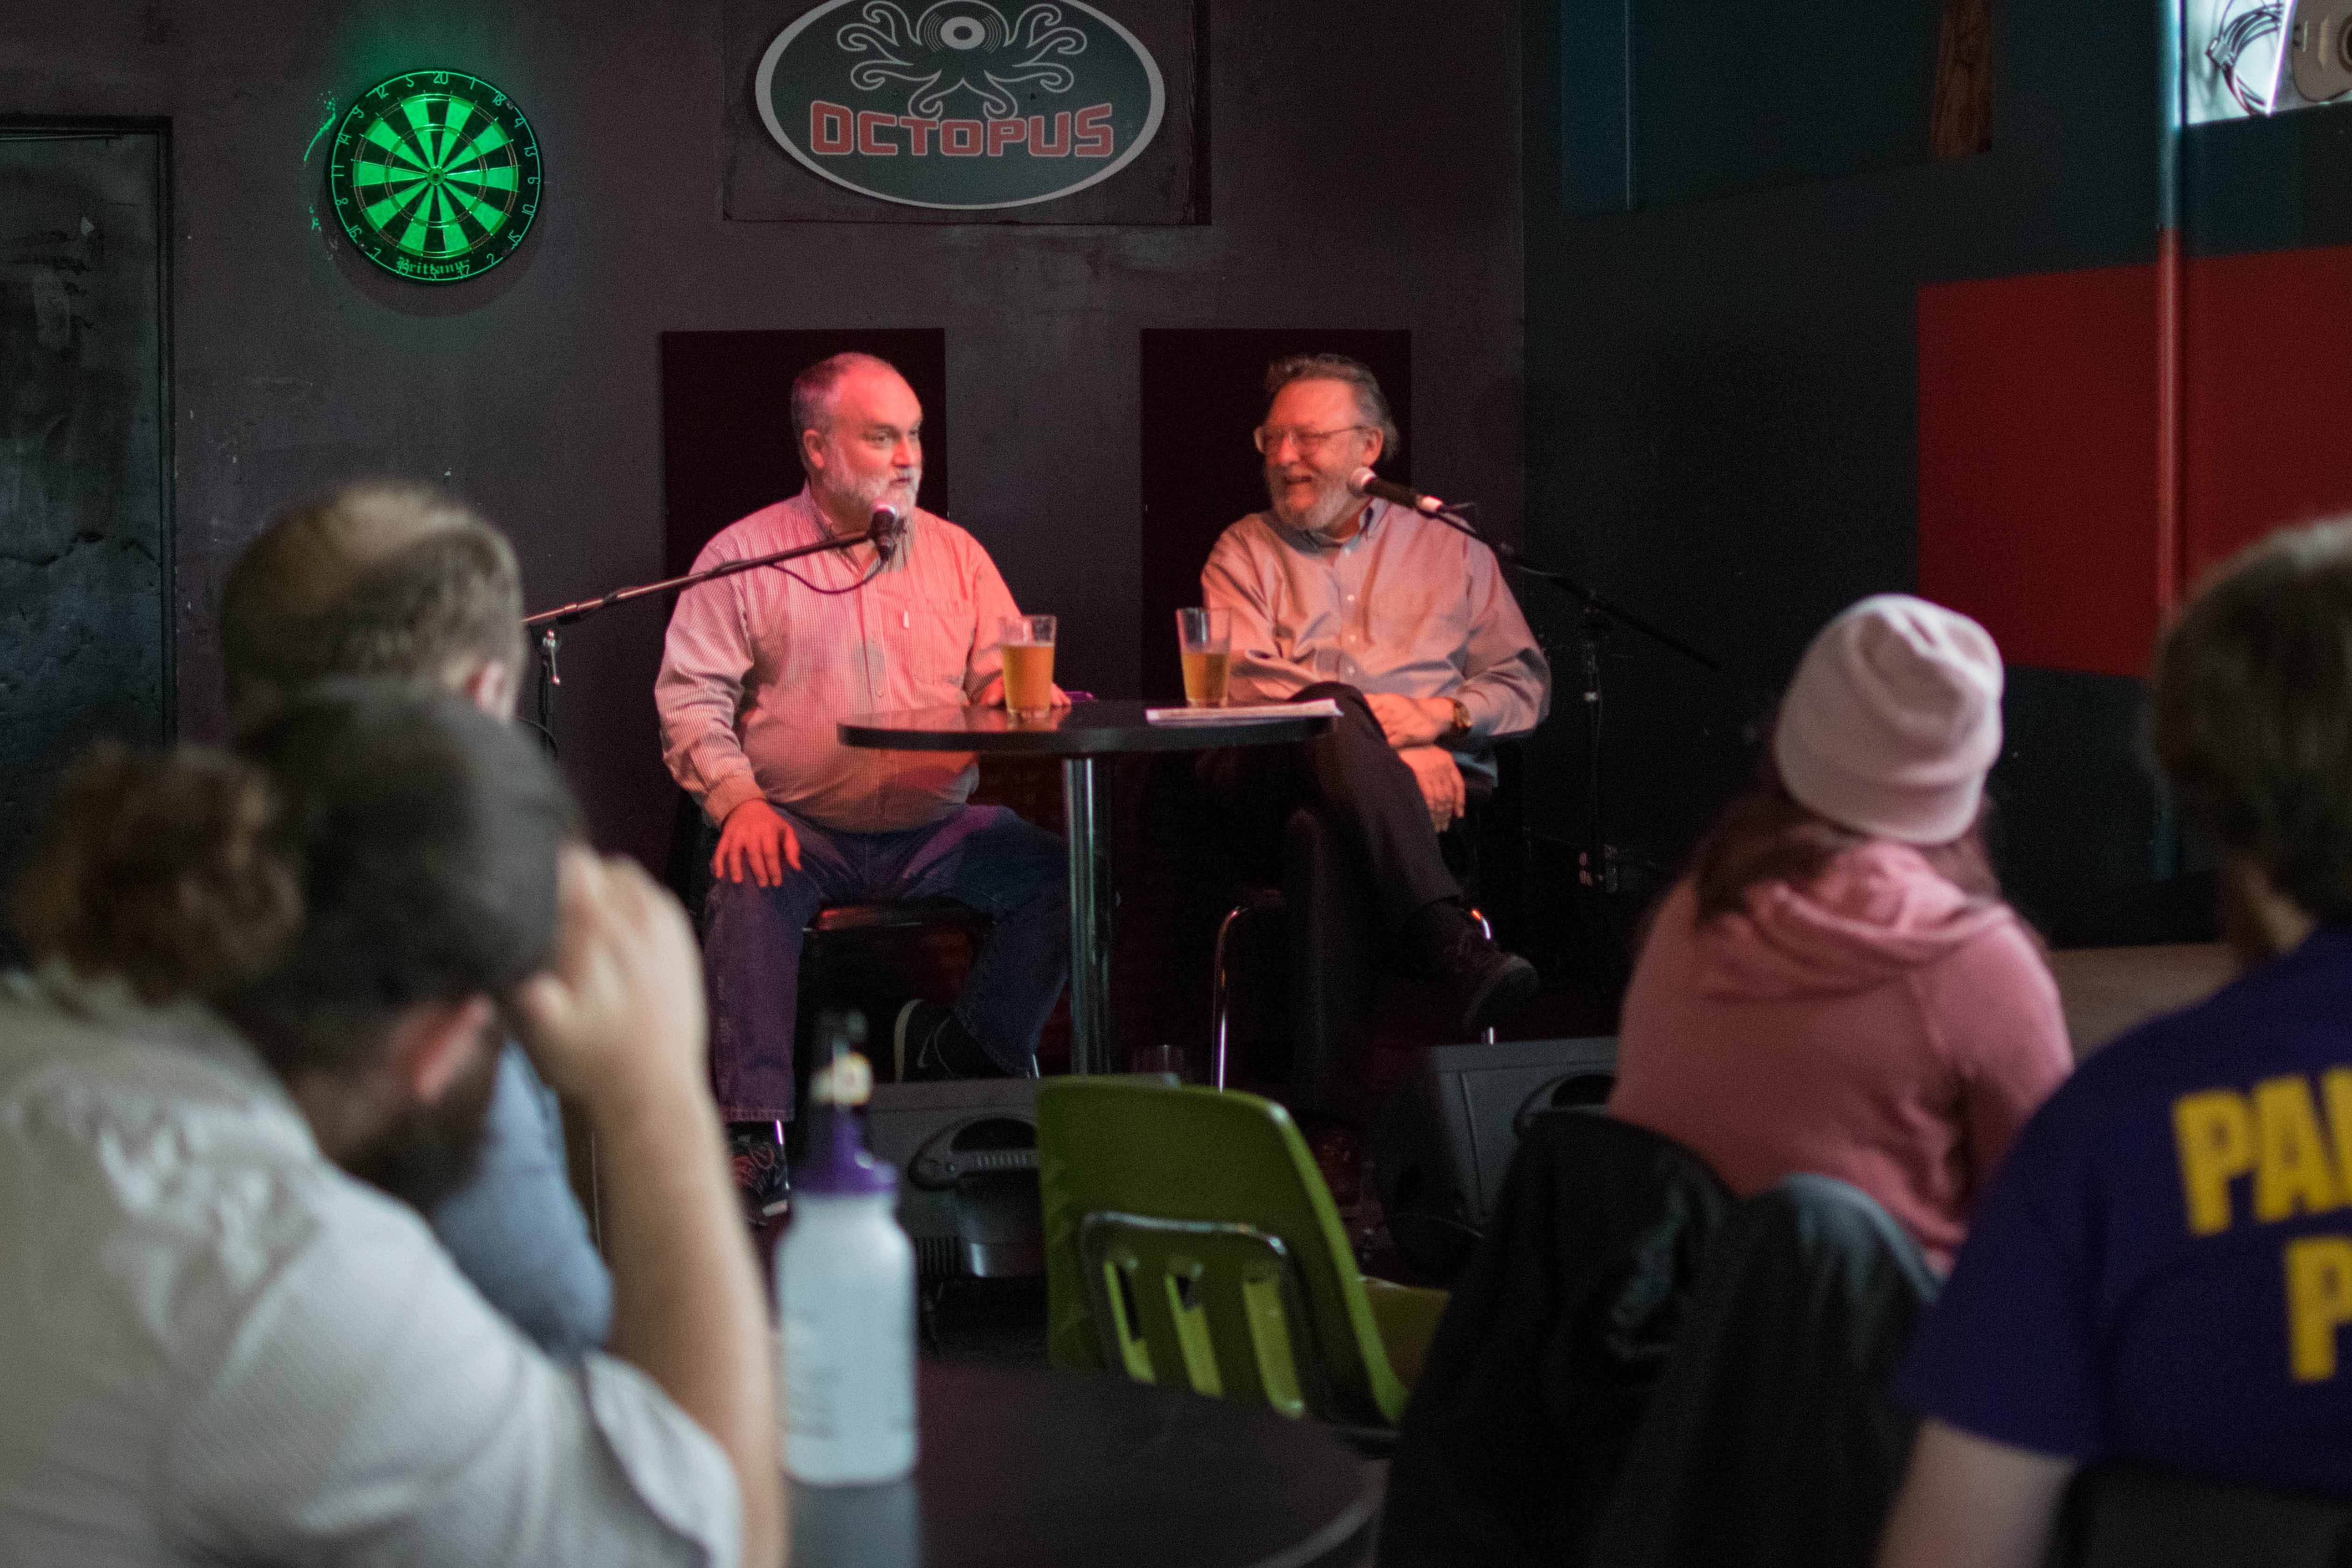 Professors Steve O'Kane (Biology) and Jerry Soneson (Philosophy and Religions) discussed the compatibility of science and religion for the most recent